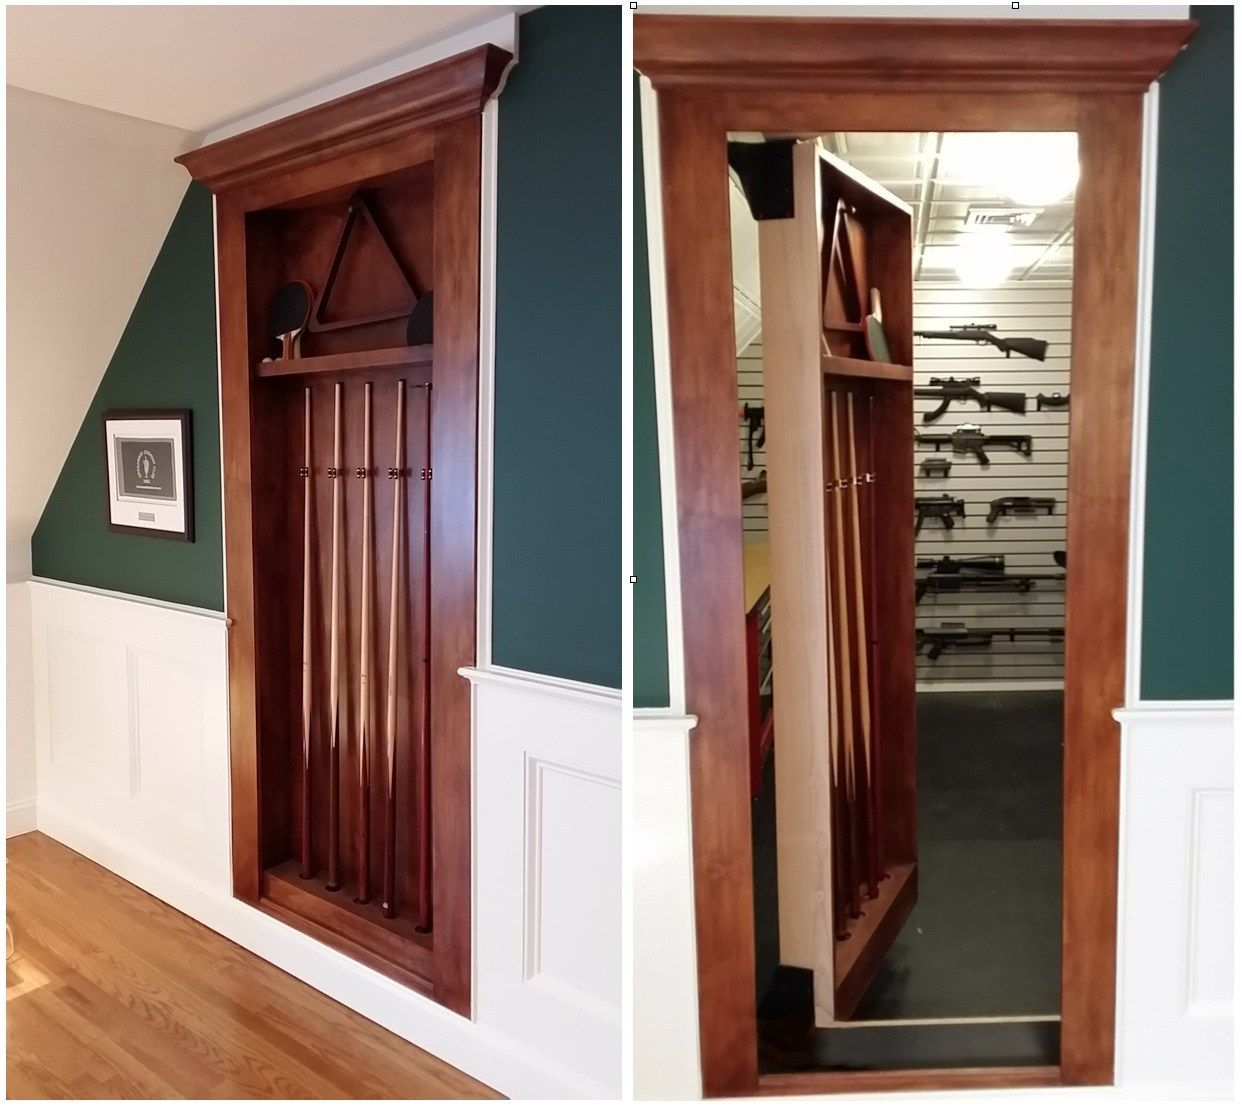 Project Type Built In Pool Cue Rack Wood Species Clear Alder Finish Stained Additional Features Electromagnetic Locking System